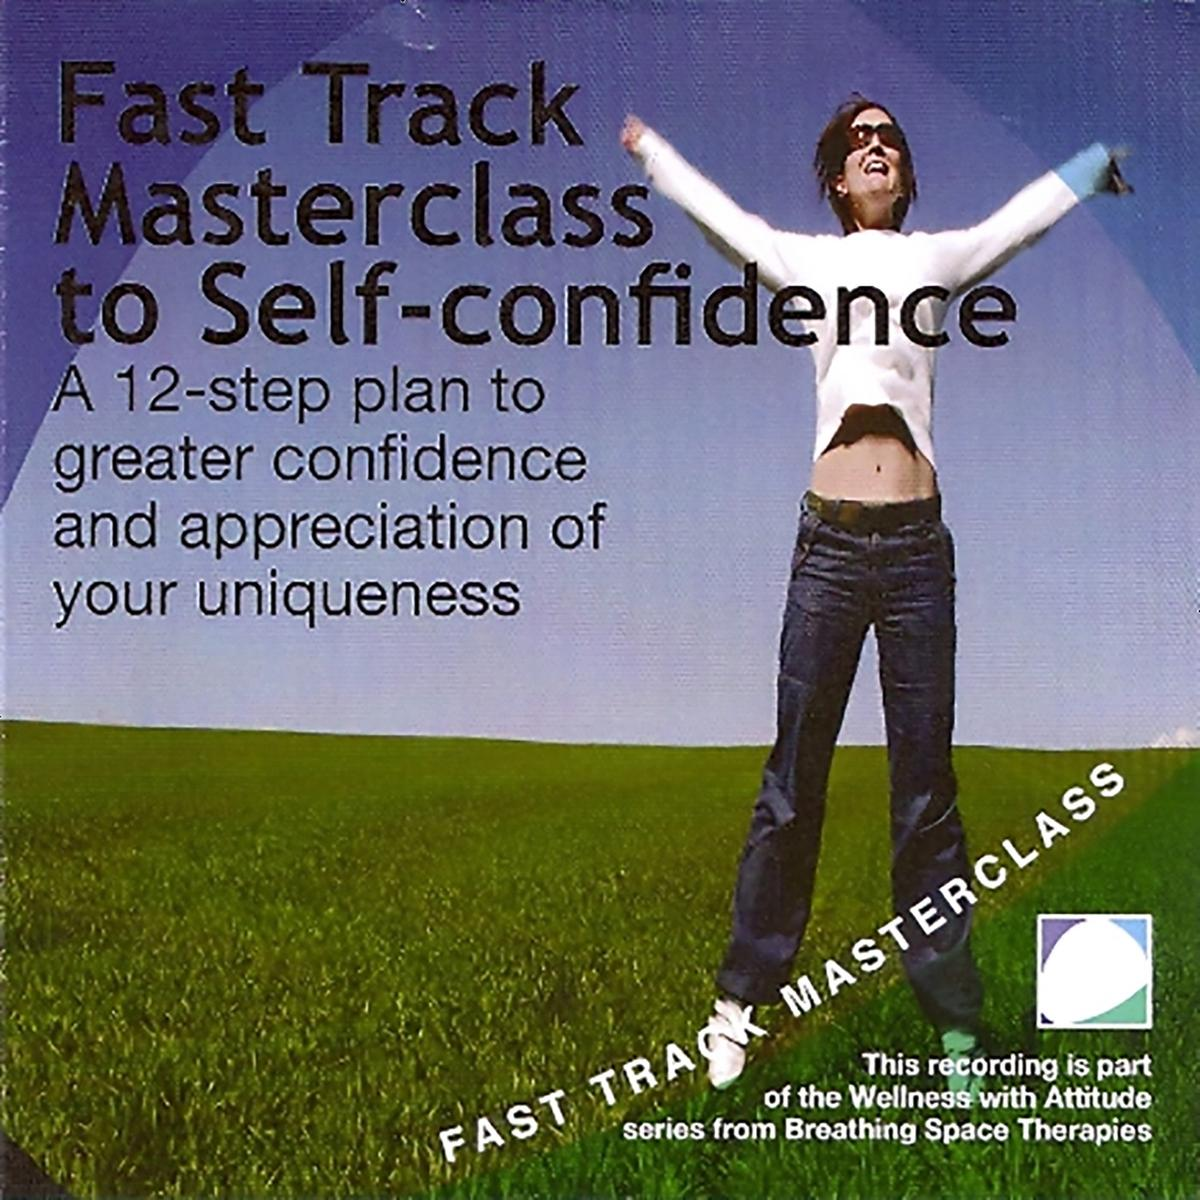 Fast track masterclass to self confidence - Audiobook